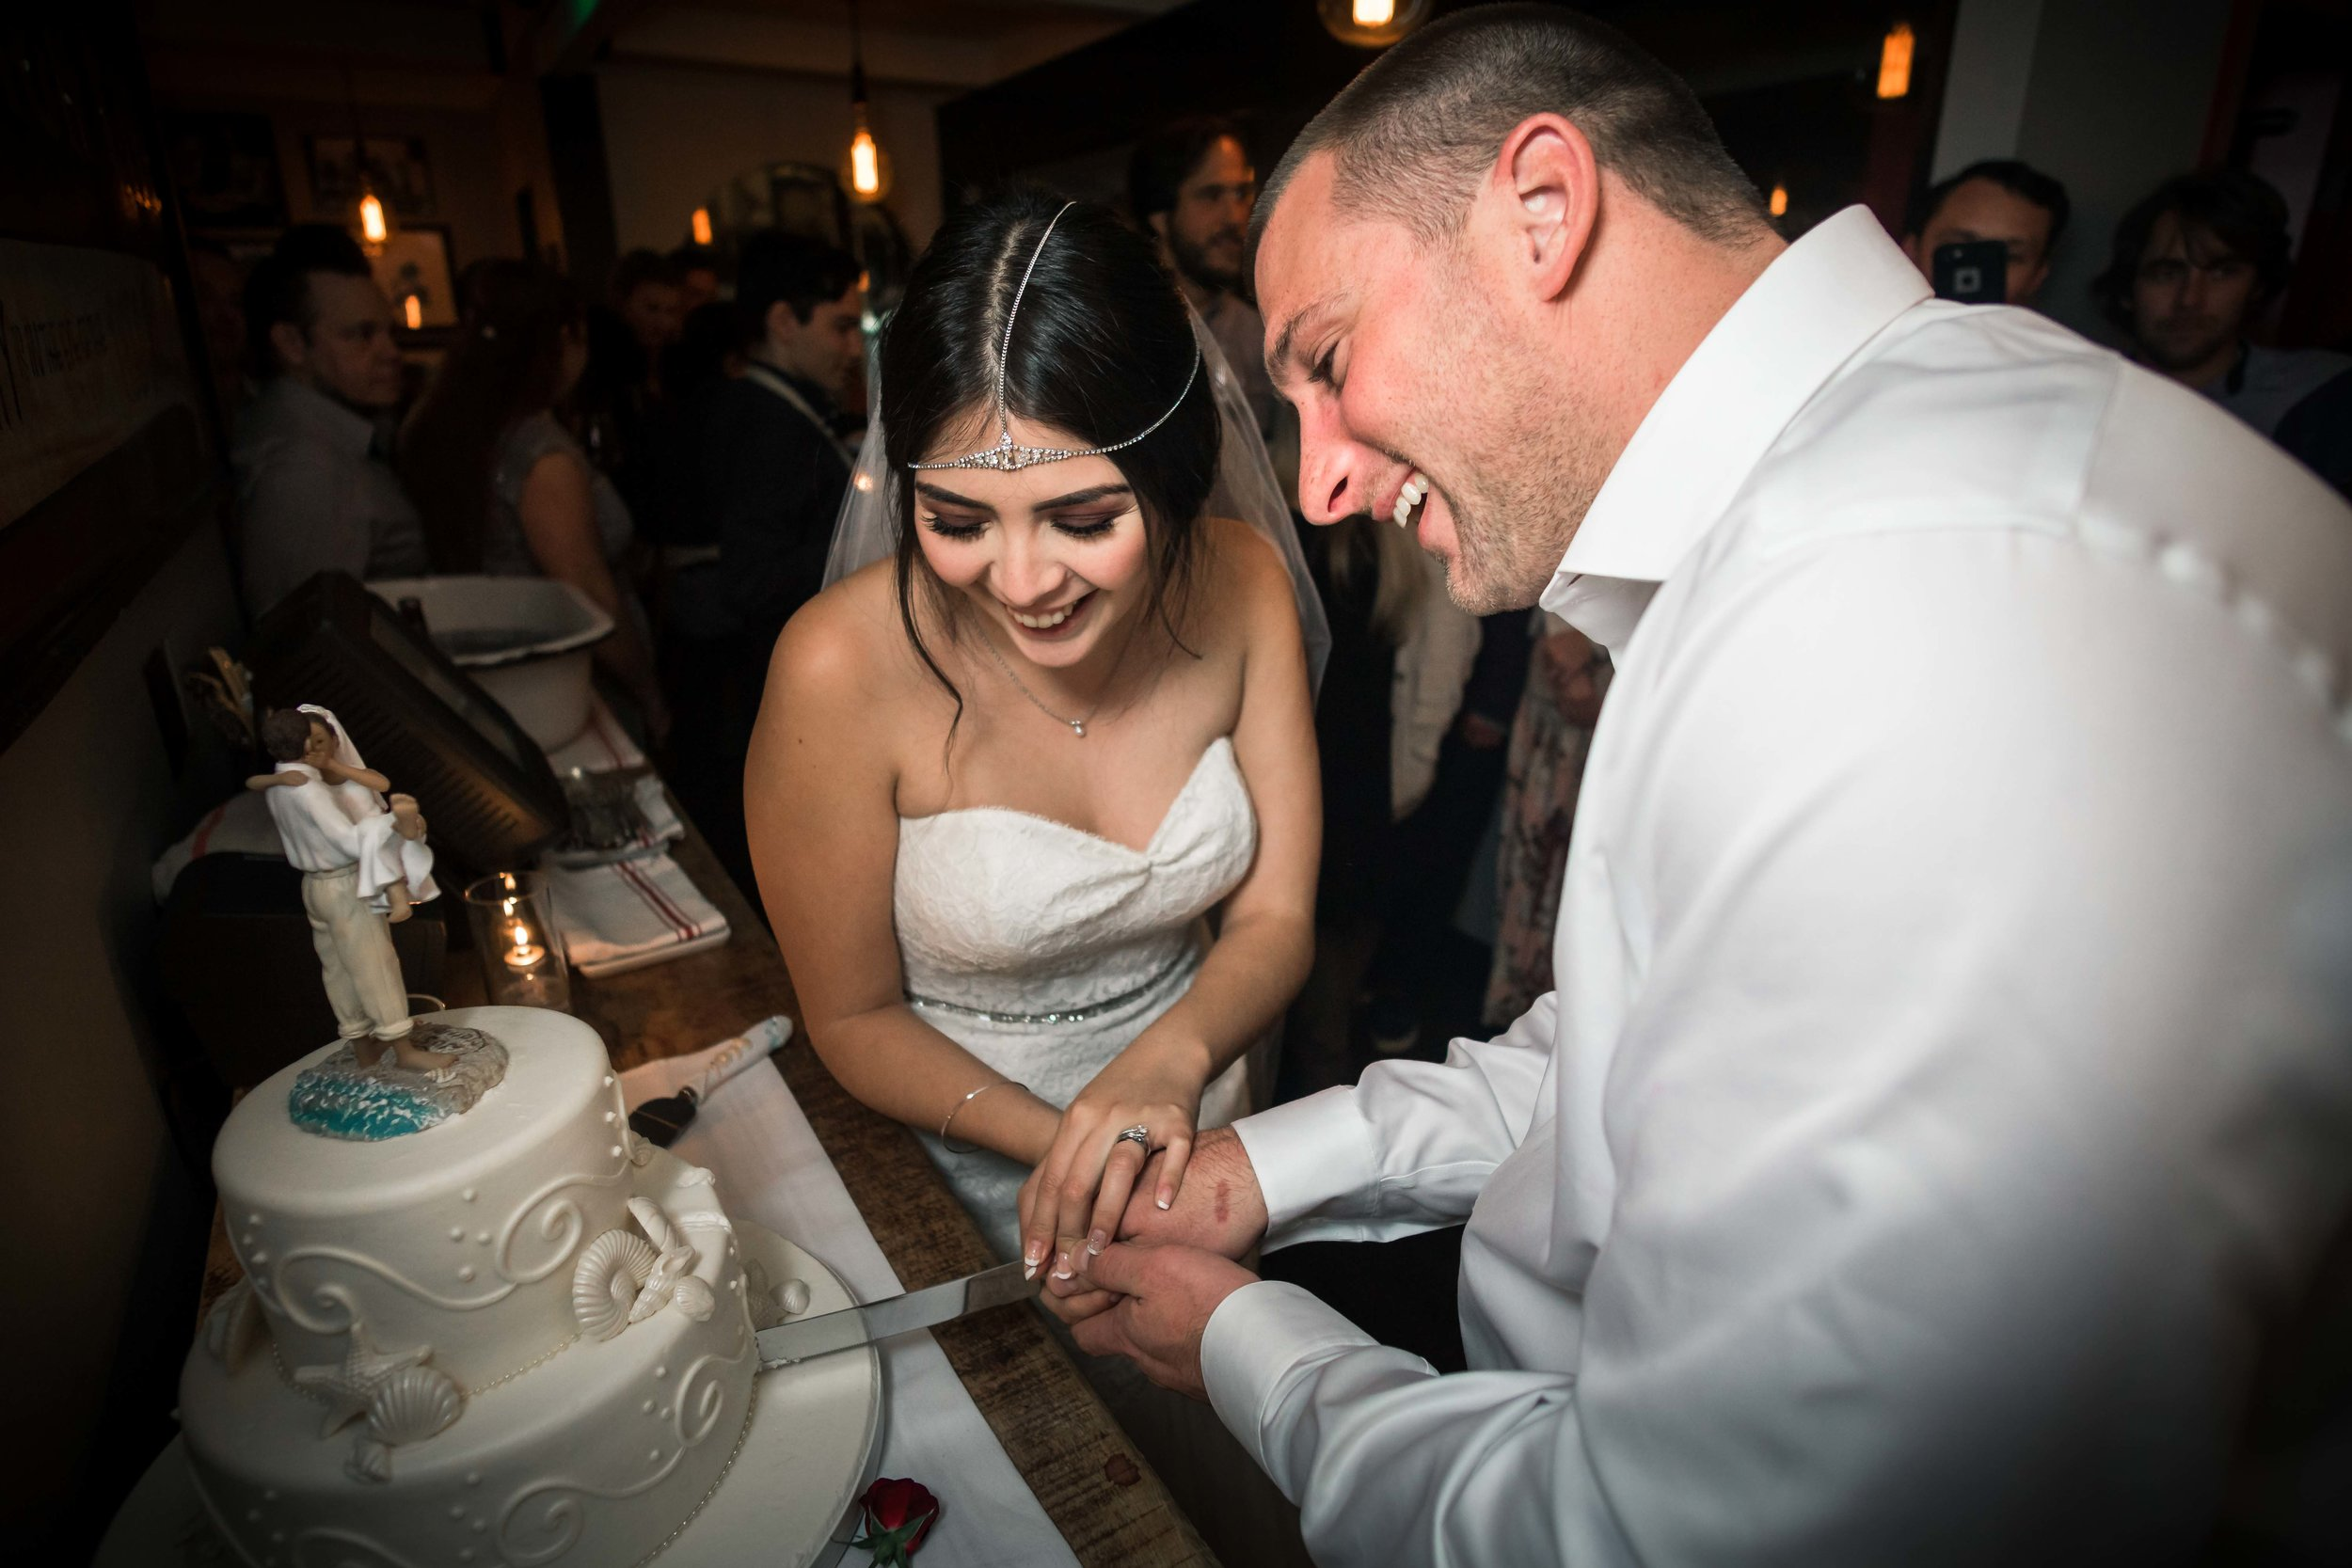 The wedding couple cutting the cake